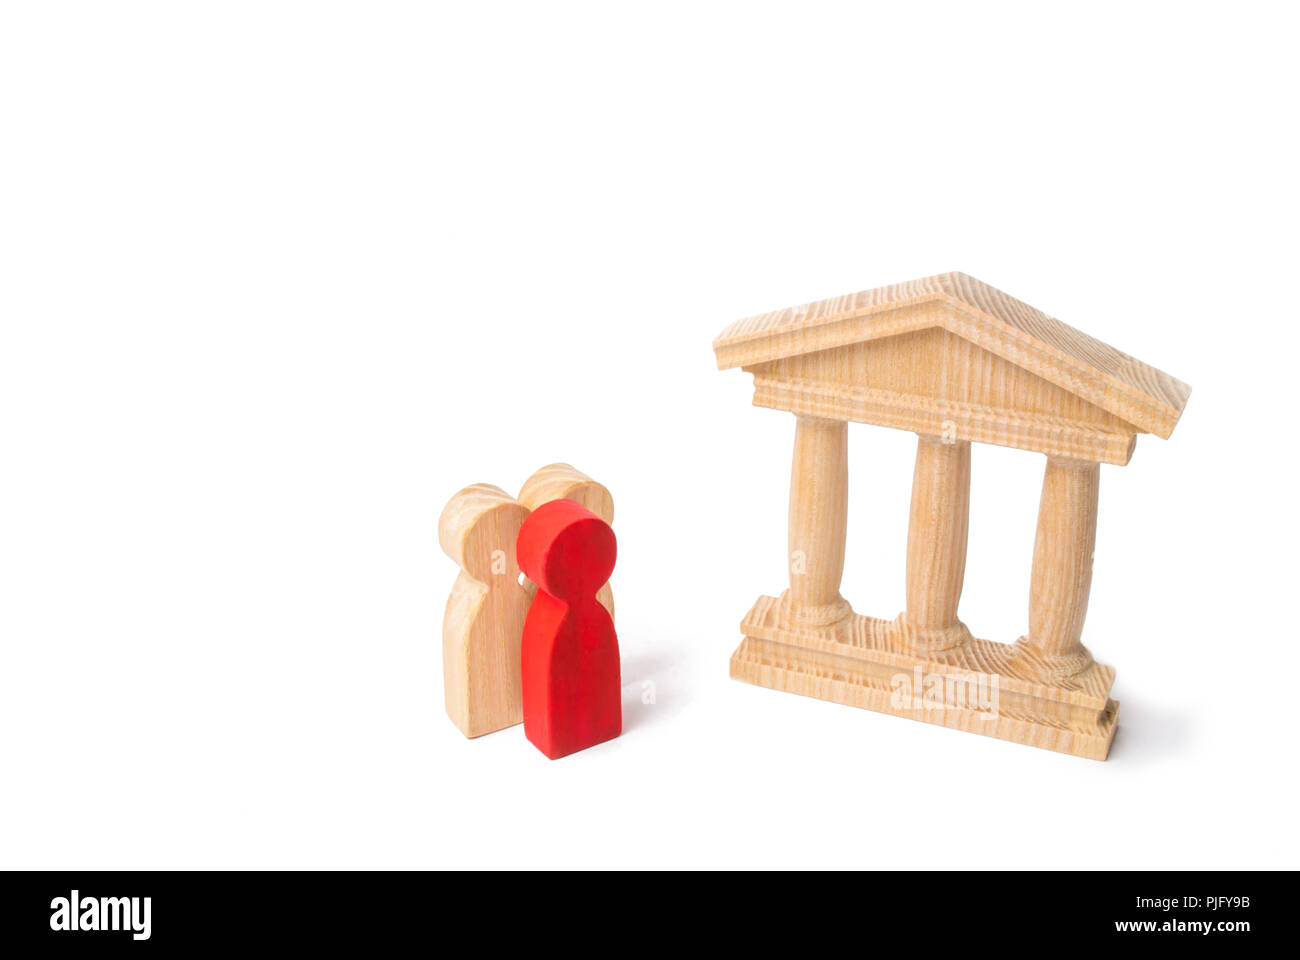 Red man in the head of the group stand near a bank or government building. management, work in the banking sector. Tourists visit monuments of history - Stock Image